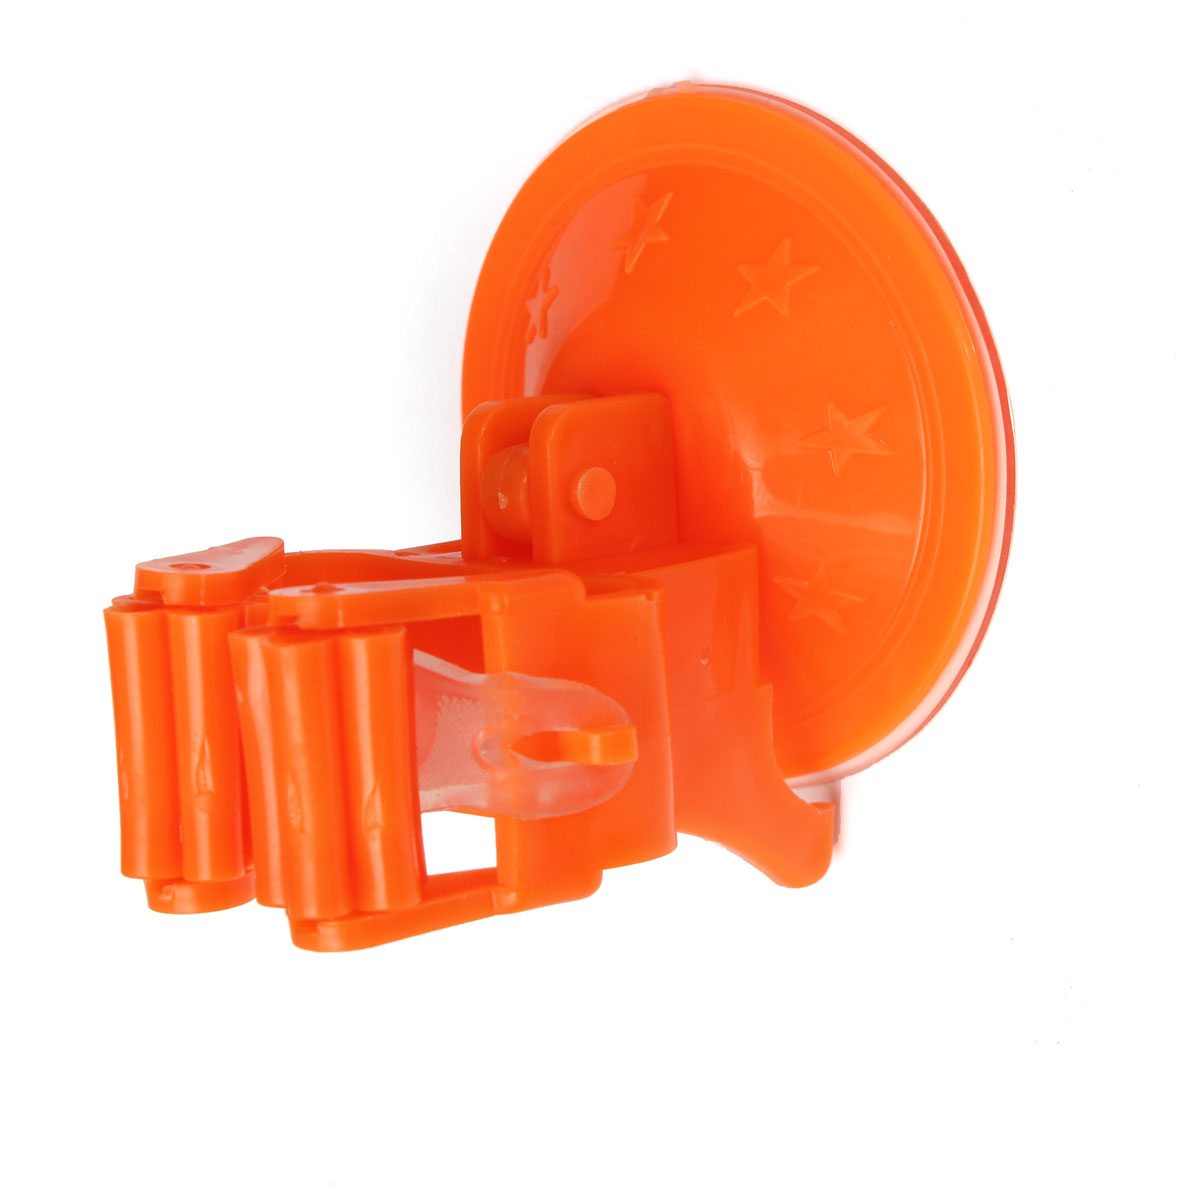 Mop And Broom Wall Suction Cup Garage Kitchen Organizer Tool Rack Hanger Holder